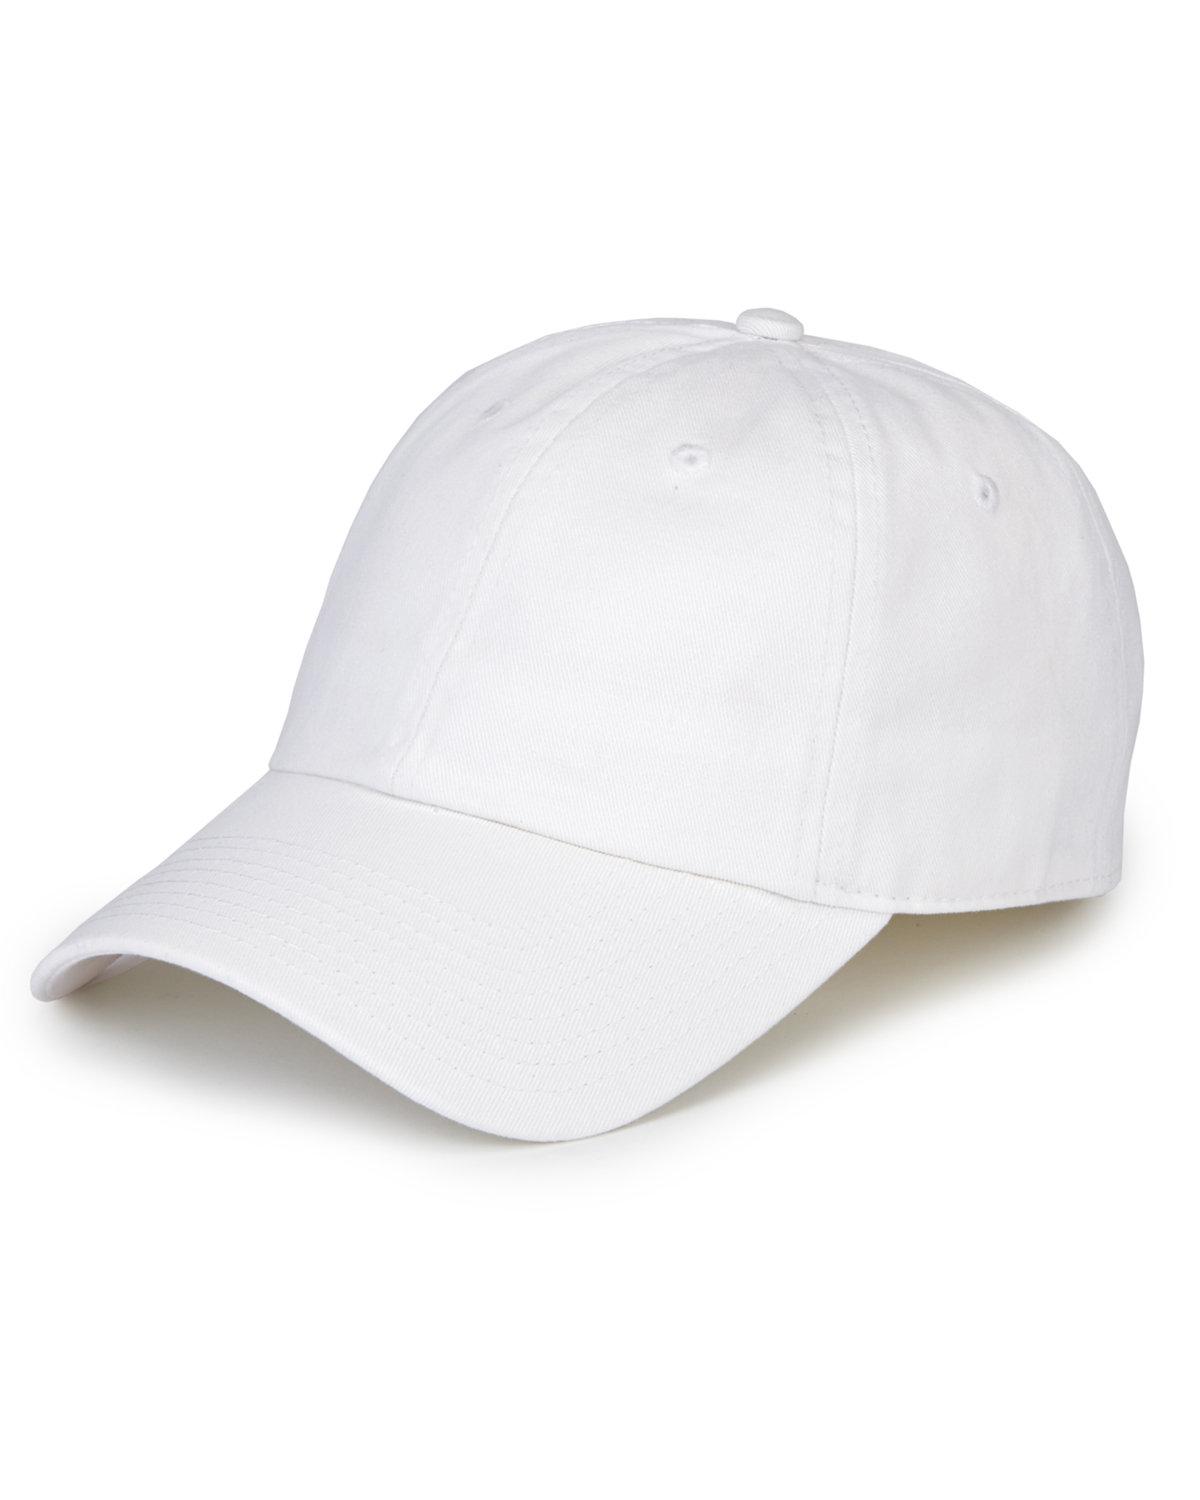 Hall of Fame 6-Panel Performance Cap WHITE